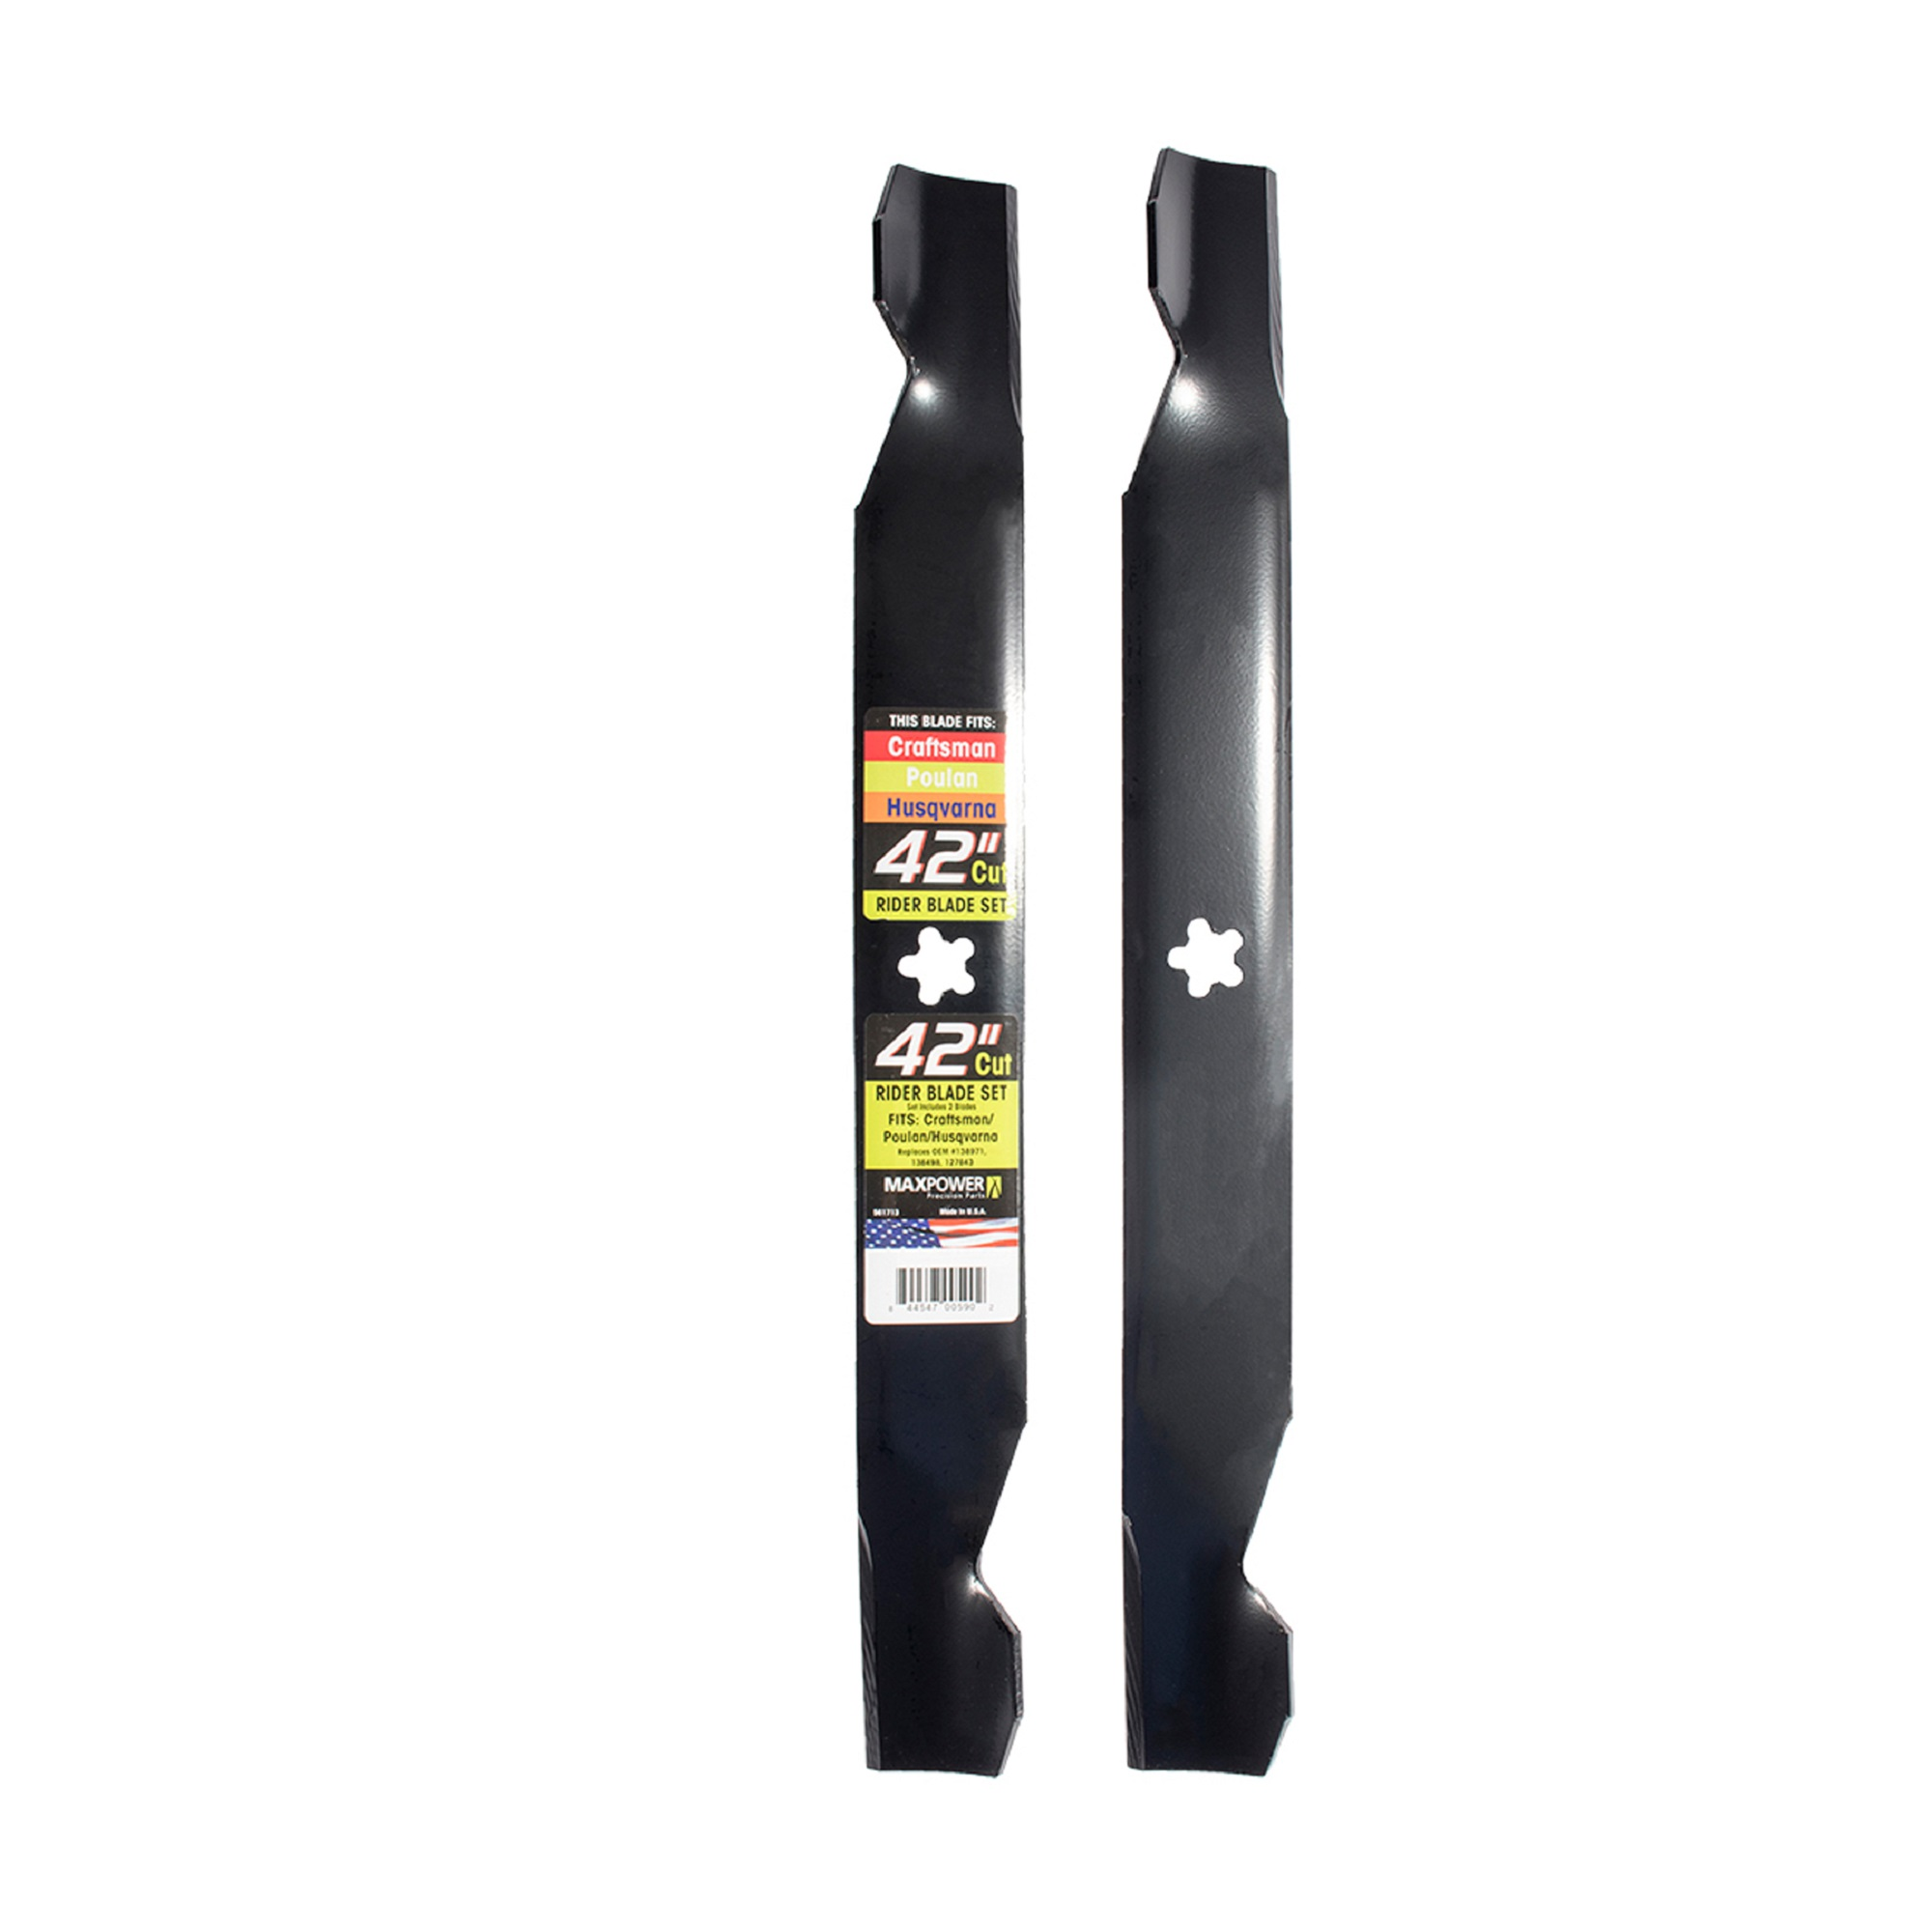 "MaxPower 561713 (2) Blade Set for 42"" Cut Poulan, Husqvarna, Craftsman Riders Replaces OEM #138971, 138498, 127843"